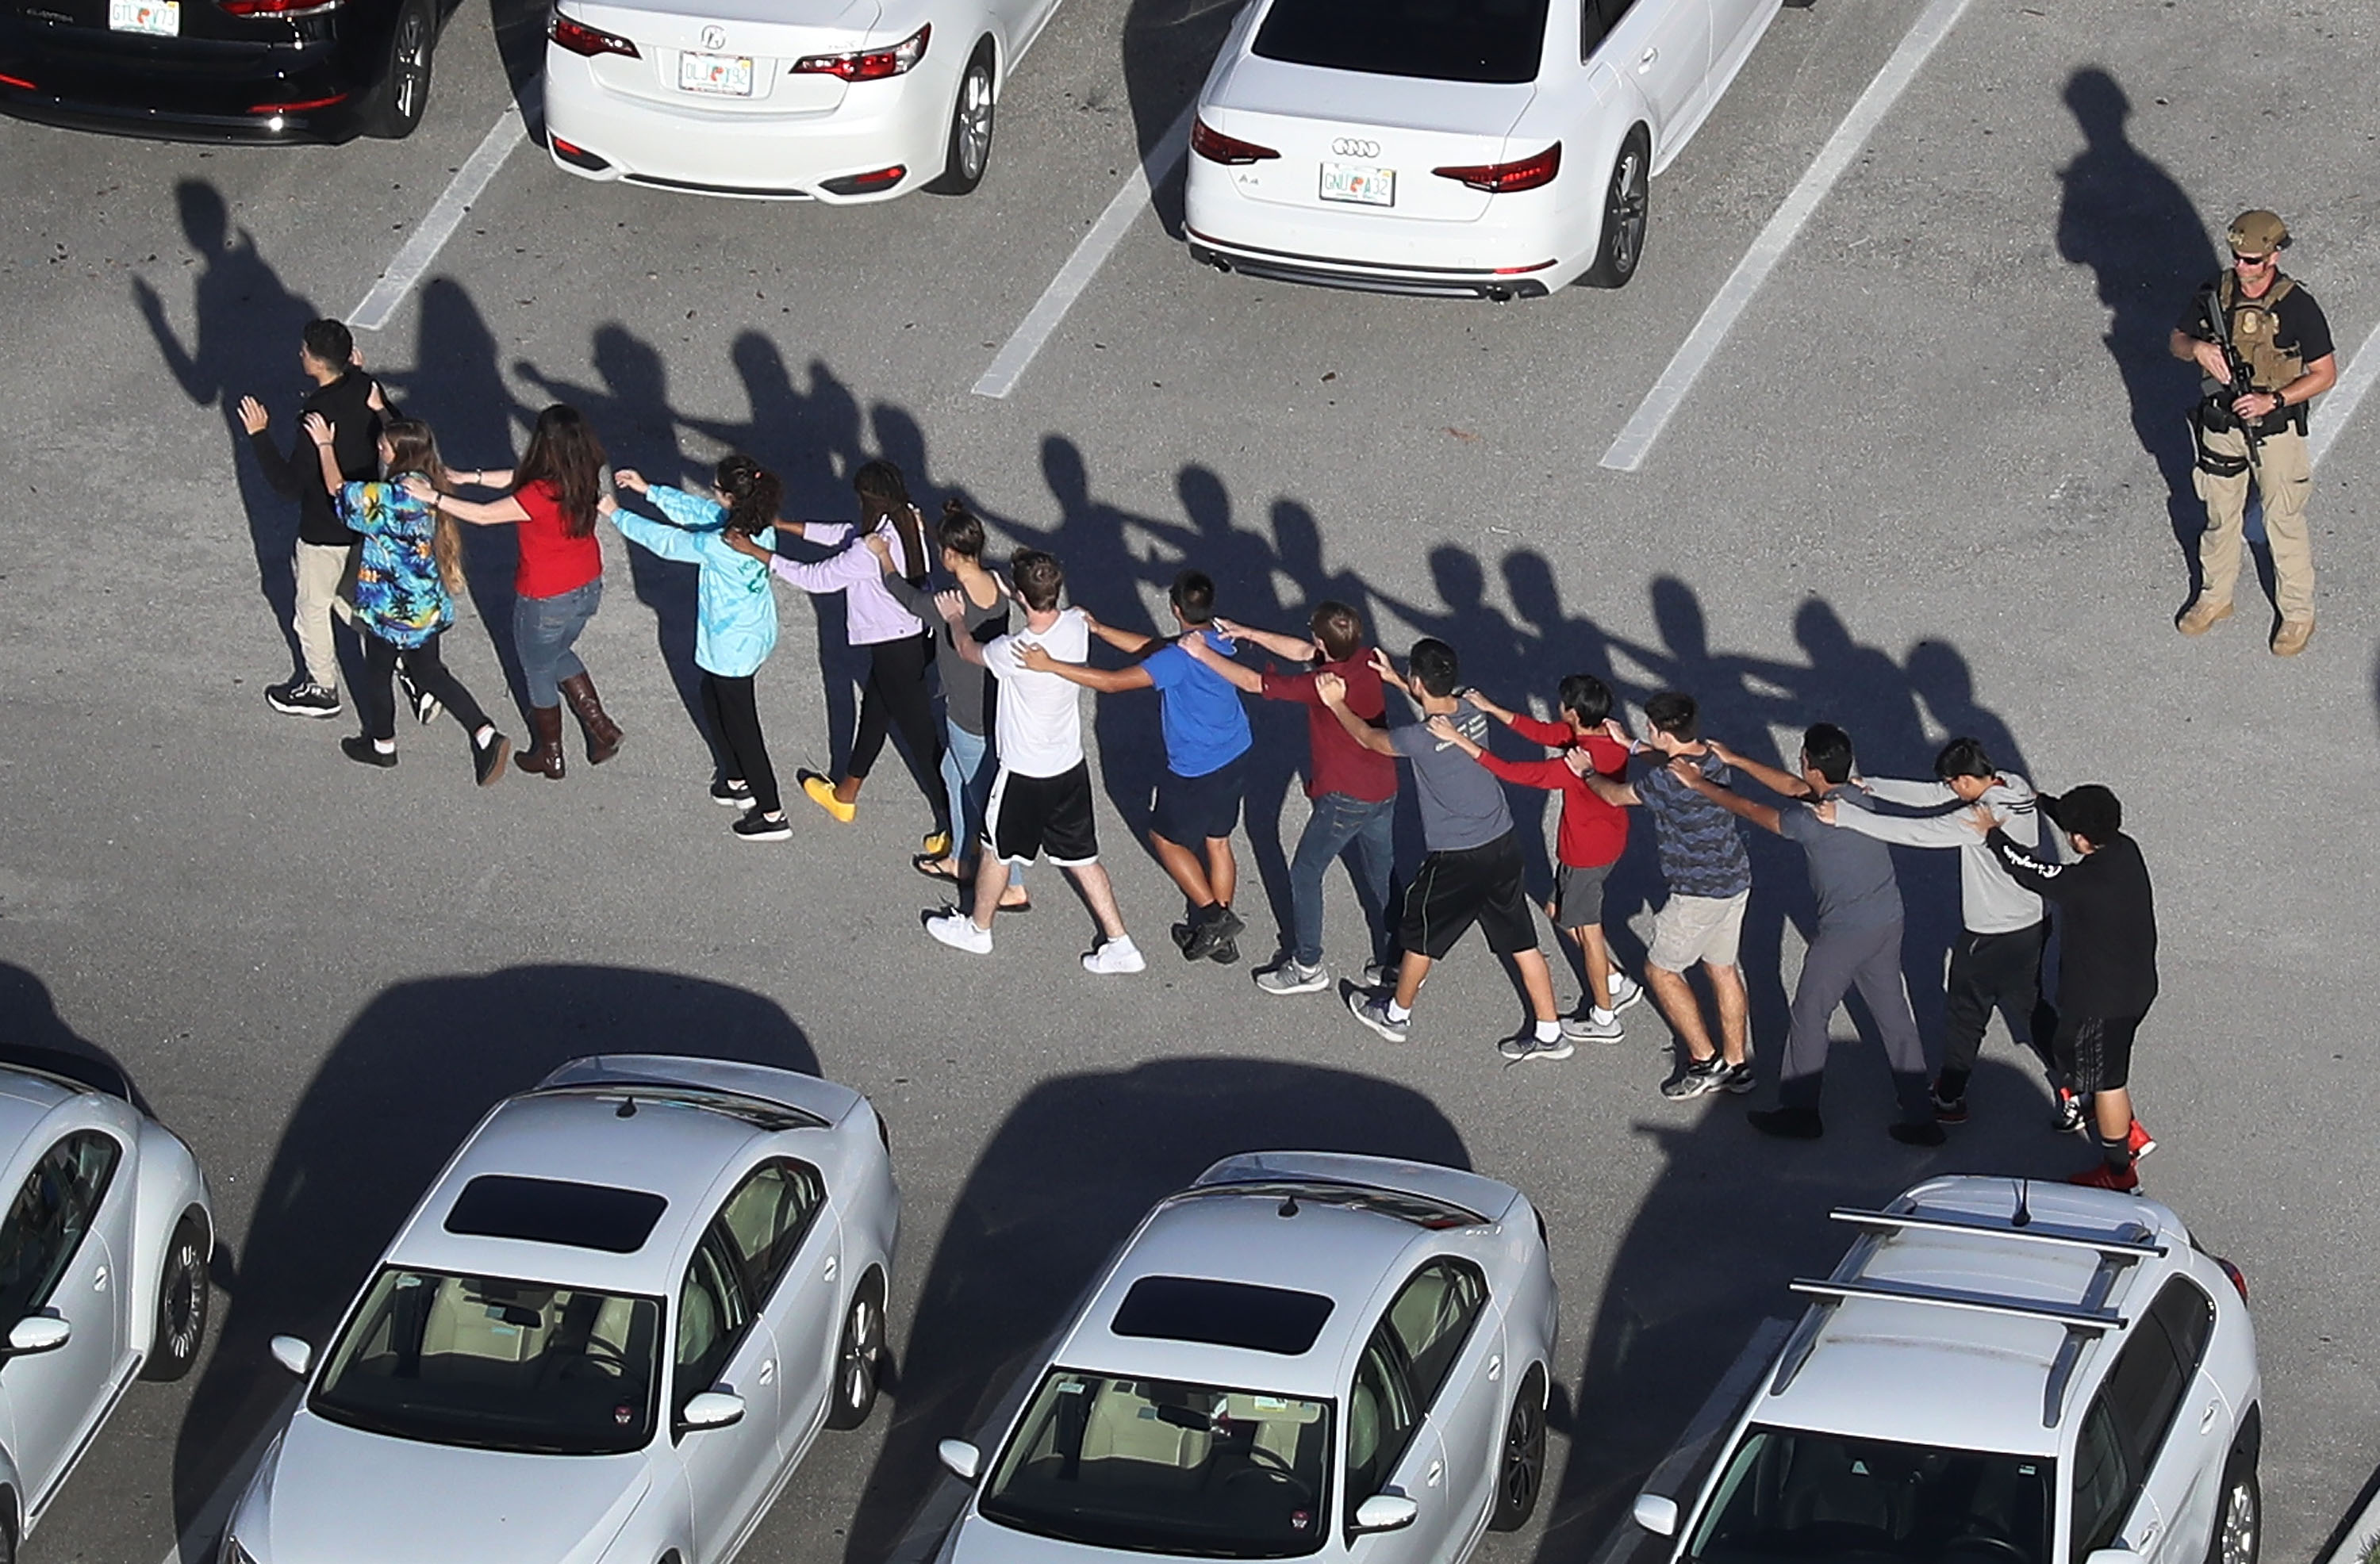 Students walk out of Marjory Stoneman Douglas High School in Parkland Florida after a shooting there. America is now debating arming teachers and gun control.